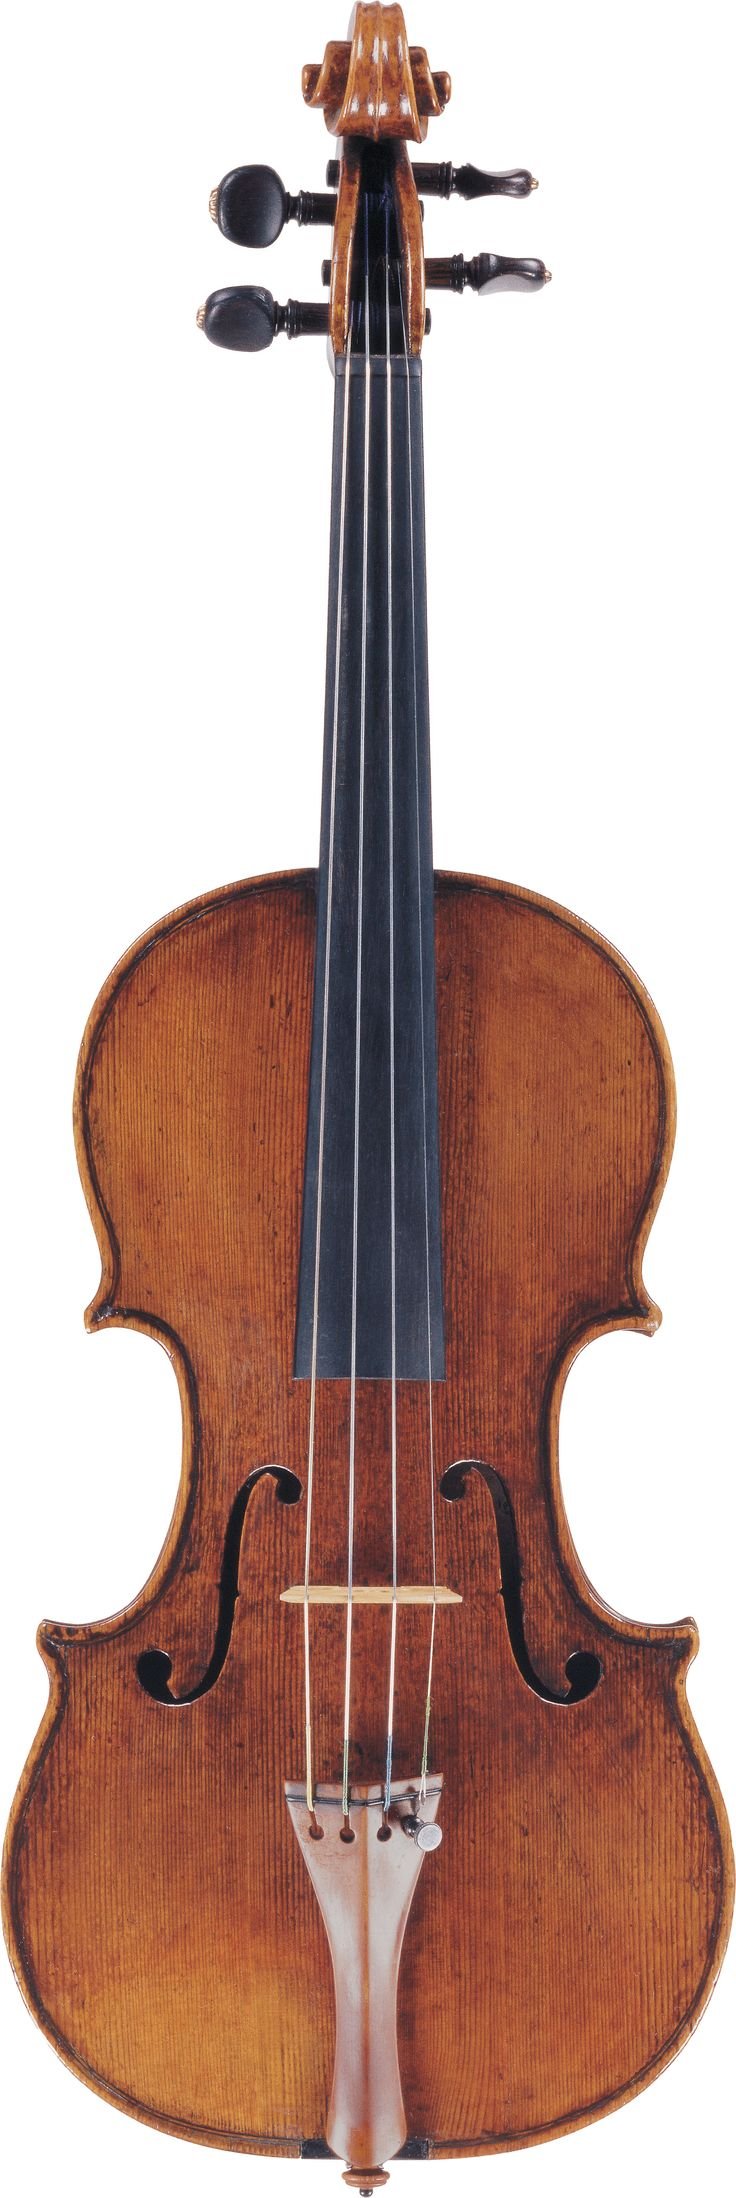 1695c Andrea Guarneri Violin from The Four Centuries Gallery